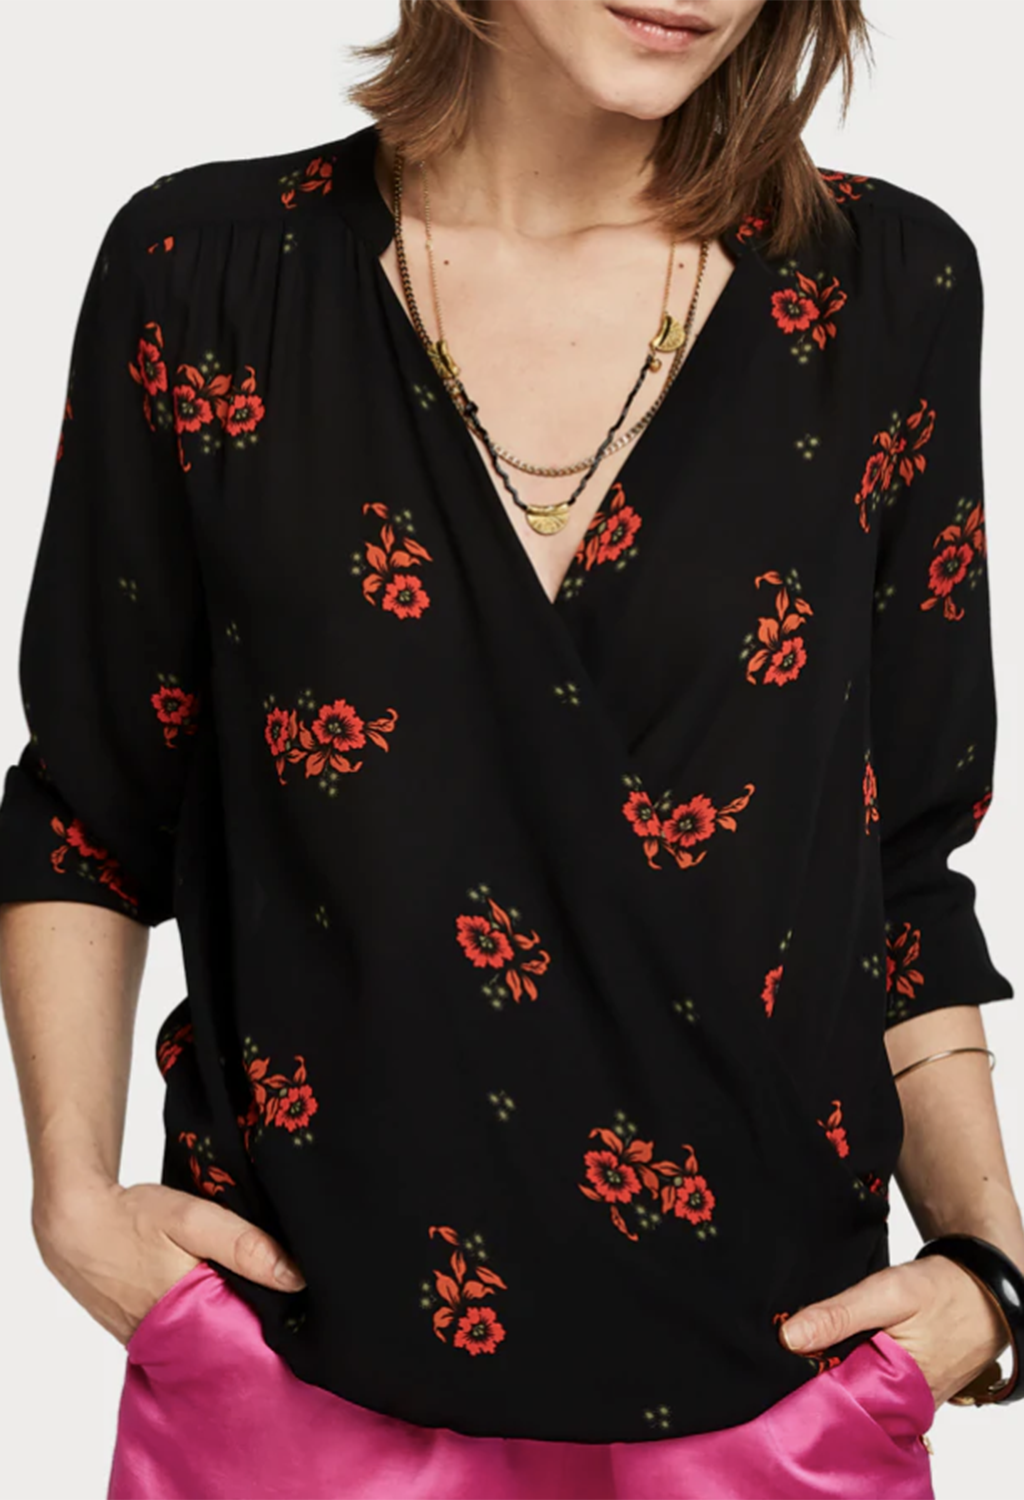 Scotch & Soda Floral Top